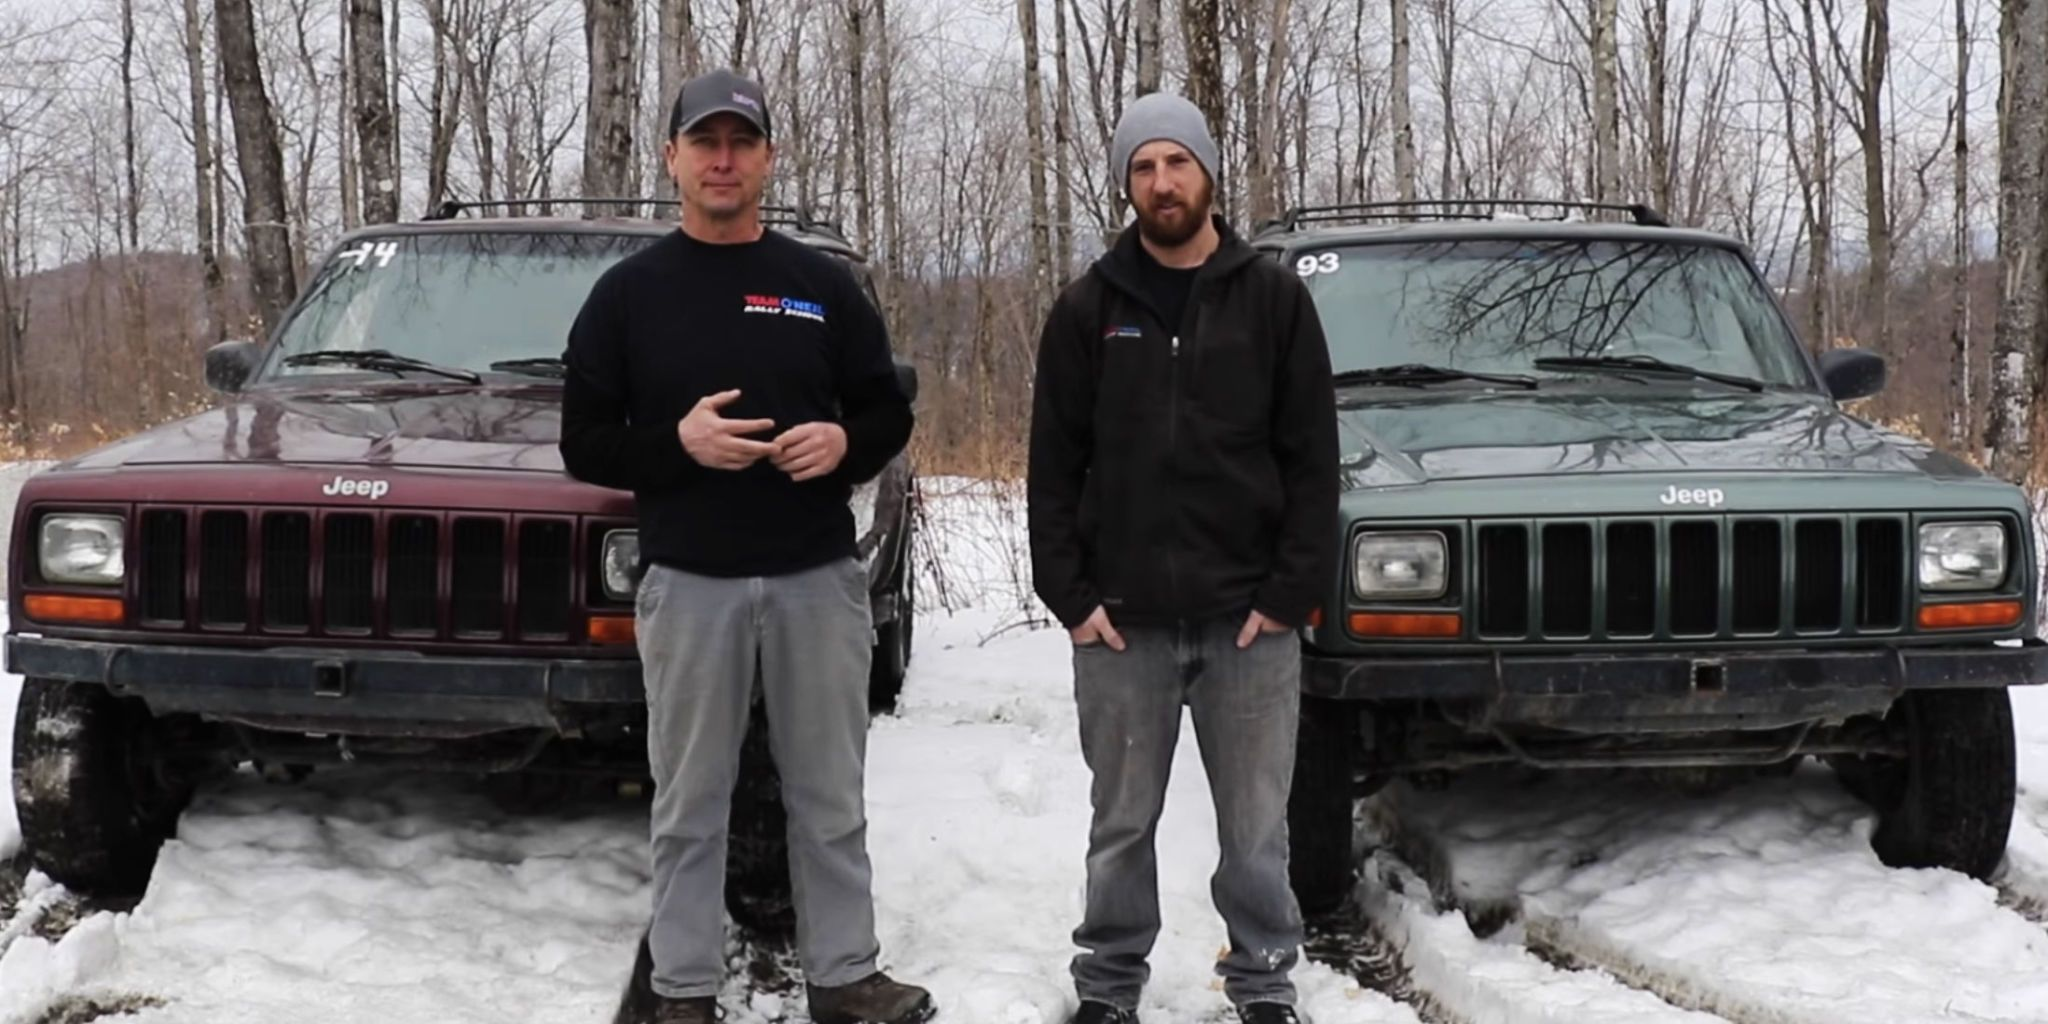 The Old Manual Vs. Automatic Argument Doesnu0027t Disappear When You Go Off The  Pavement. In The World Of Off Roaders, The Debate On Transmission Choice Is  Just ...